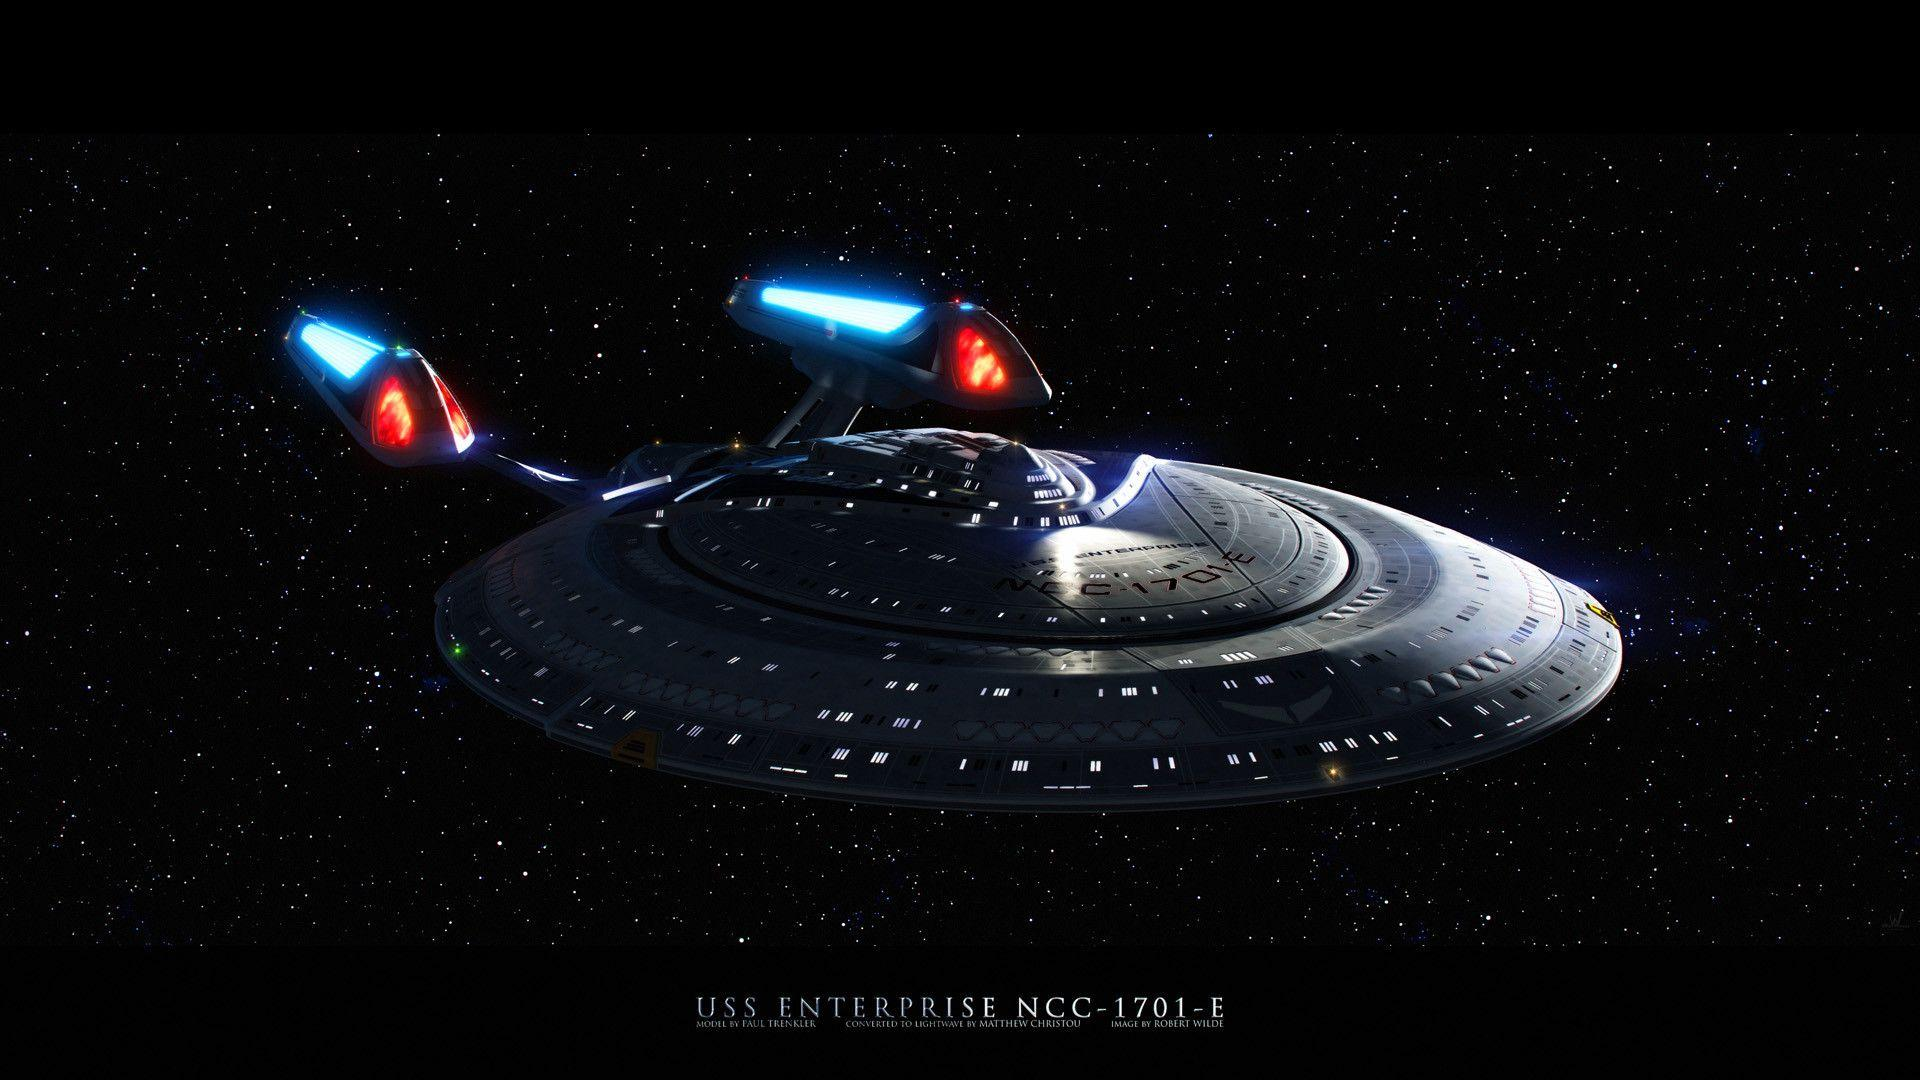 enterprise e wallpaper hd - photo #1